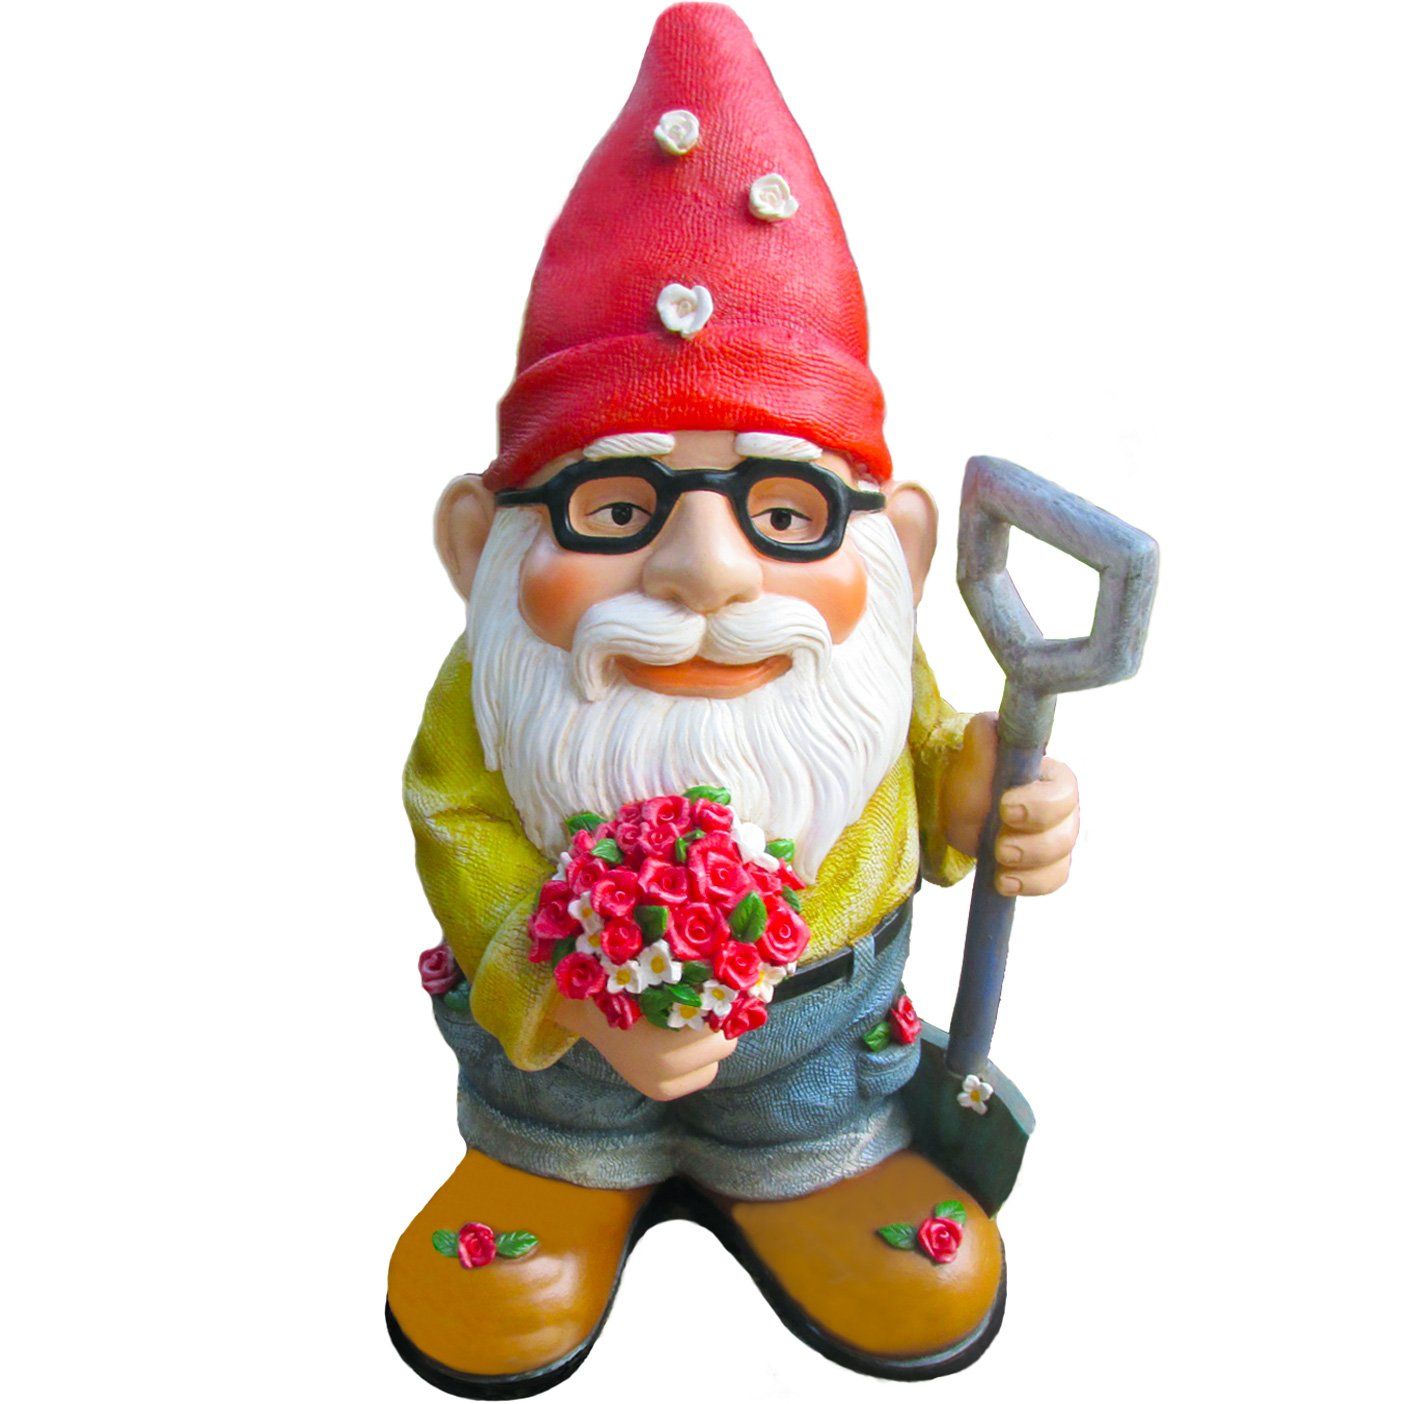 Twig & Flower The Beautiful Gift of Flowers Gnome - 9.5 Inches Tall - Hand Painted and Adorably Designed